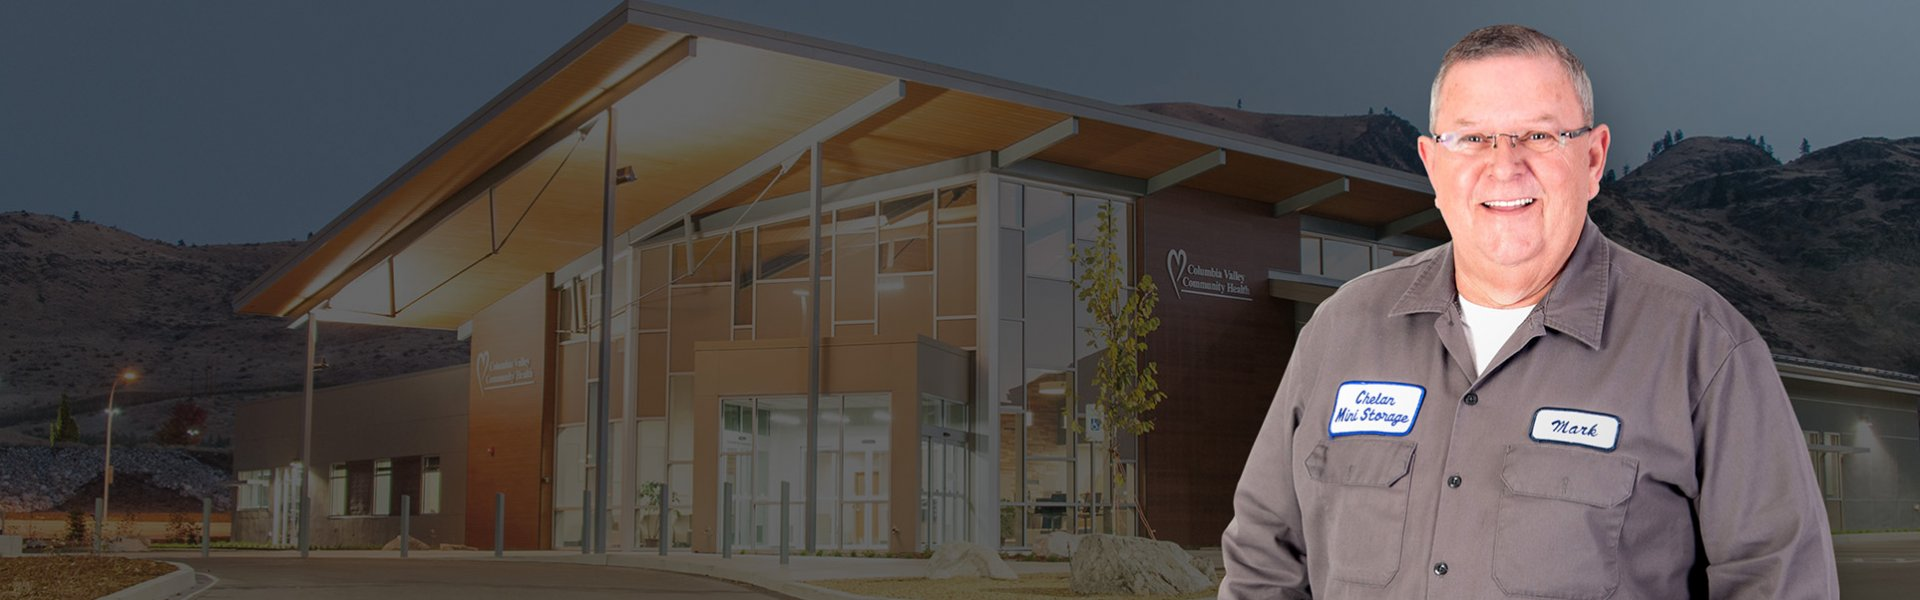 CVCH is Your Center for Health | Columbia Valley Community